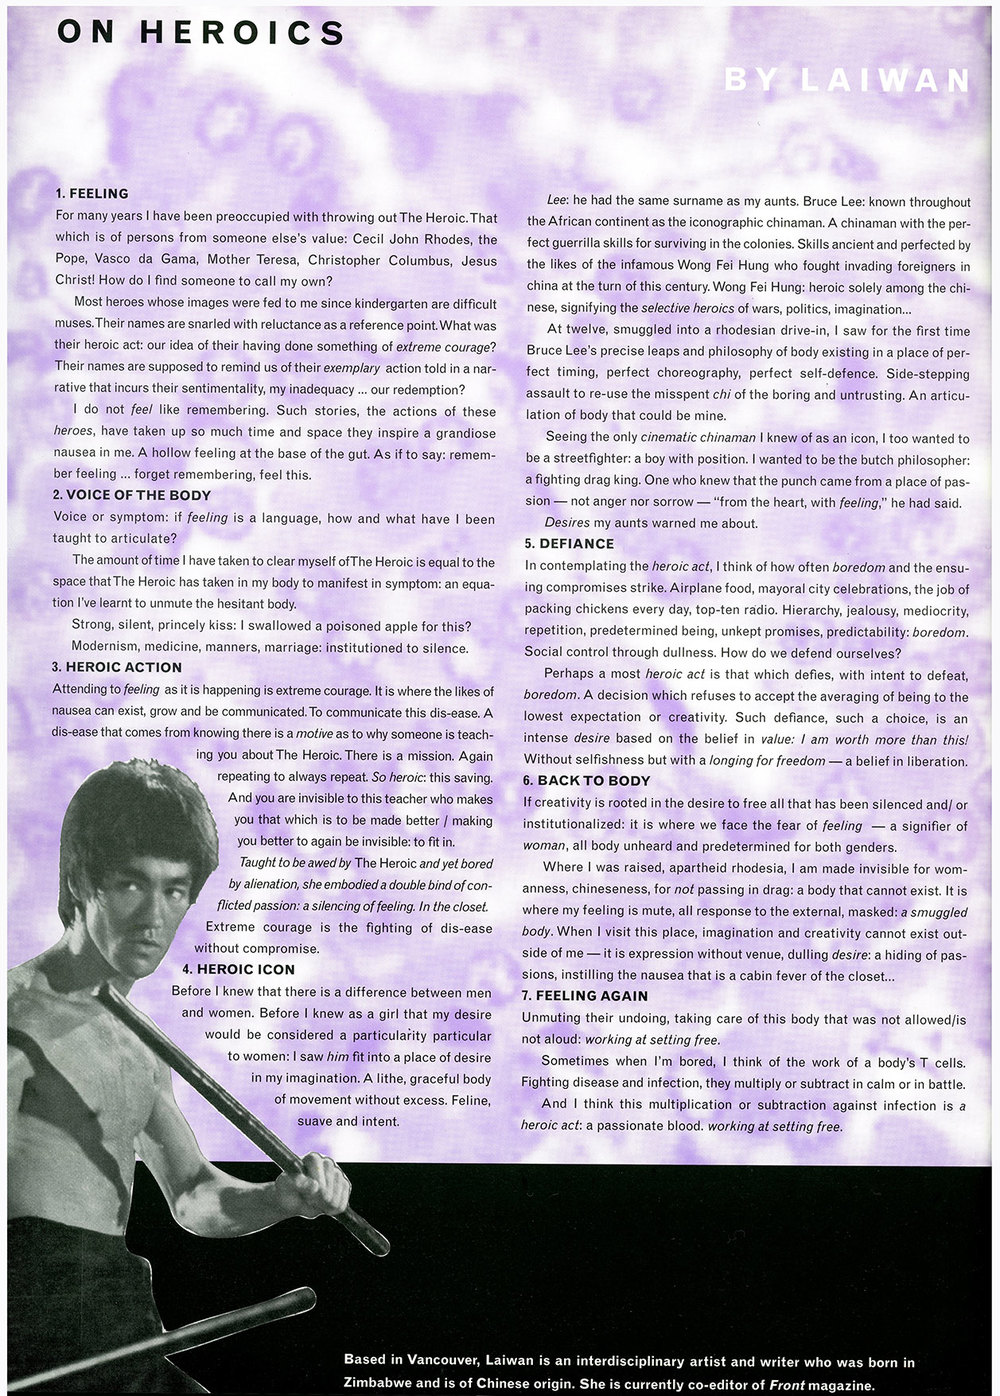 On Heroics was originally published in Mix Magazine , Spring 1997, Vol. 22:4, pg 56, Toronto, Canada